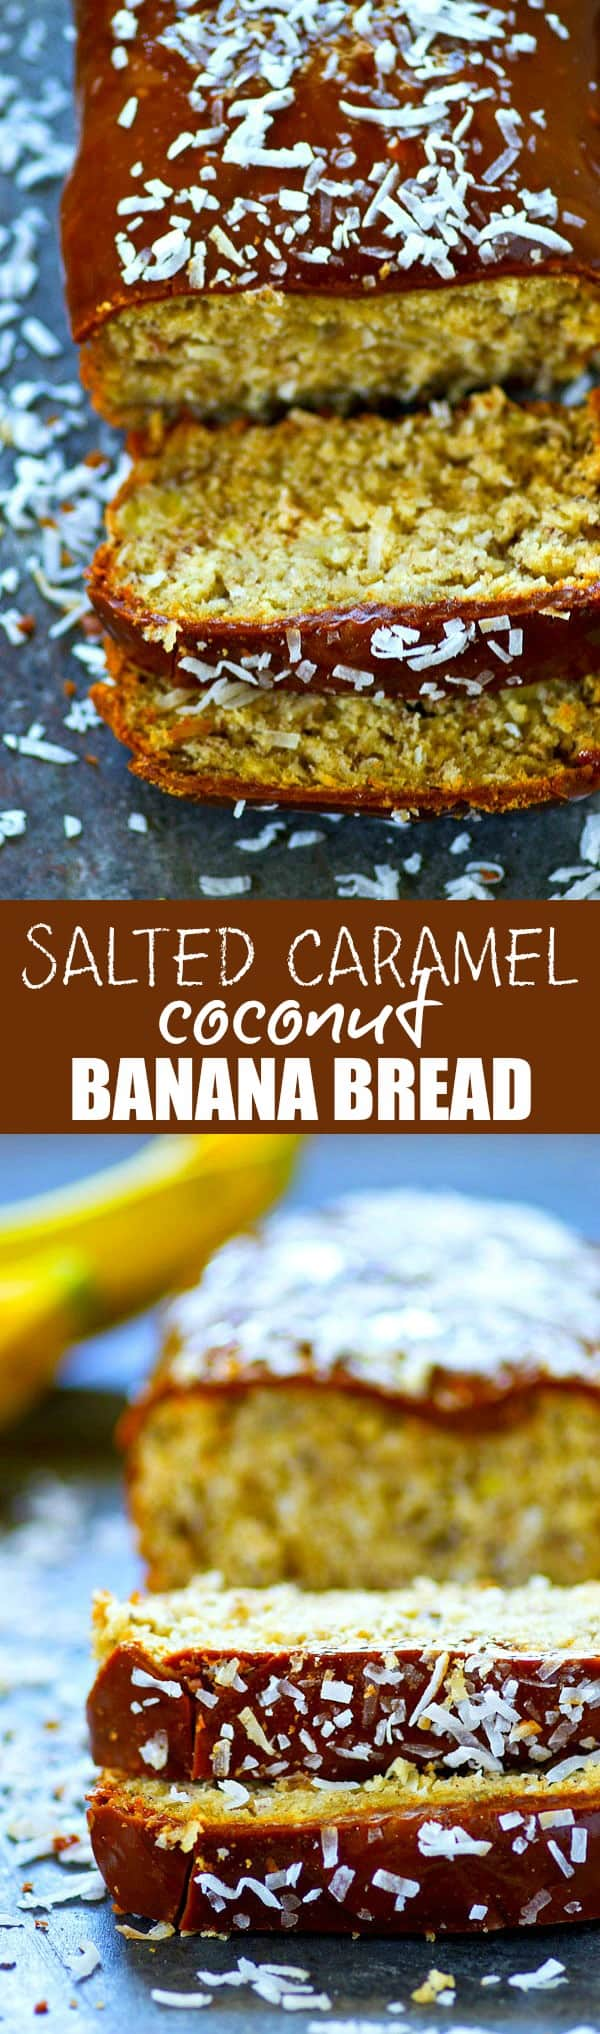 This salted caramel coconut banana bread is INCREDIBLY soft, loaded with tons of coconut, and glazed with an absolutely insane salted caramel glaze.--there's no stopping at just one slice!